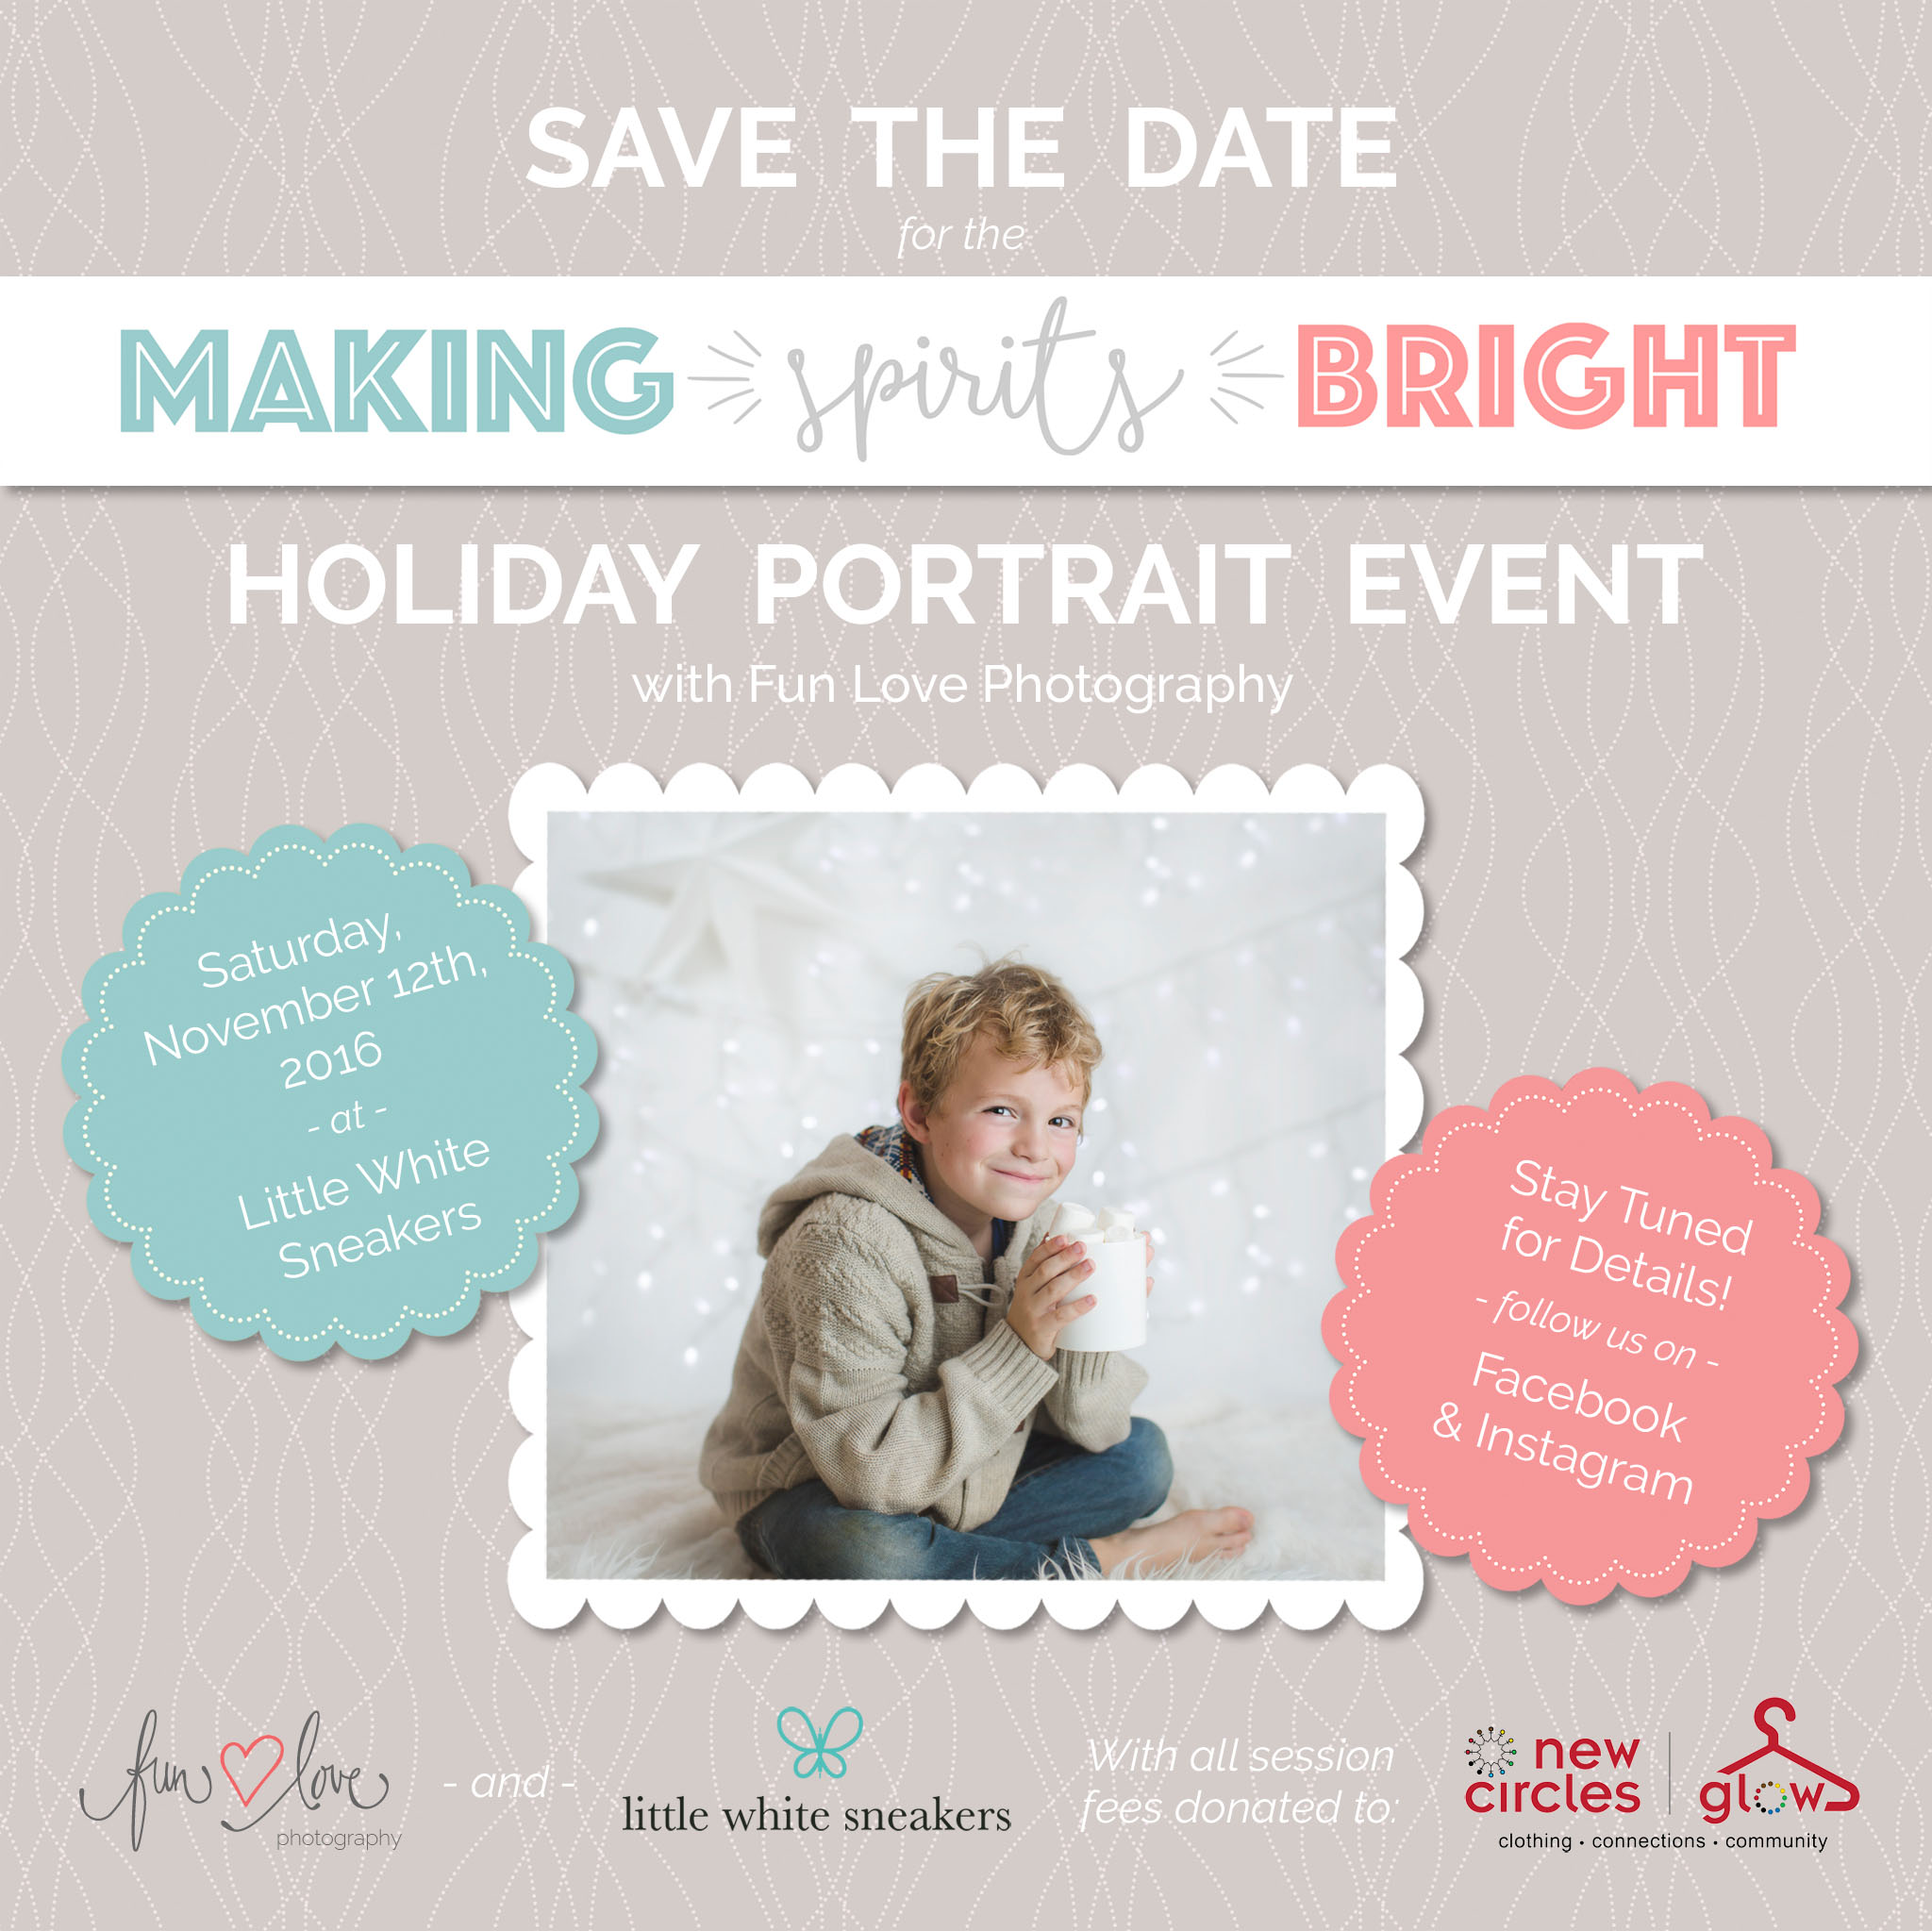 toronto-holiday-portrait-event-charity-2016